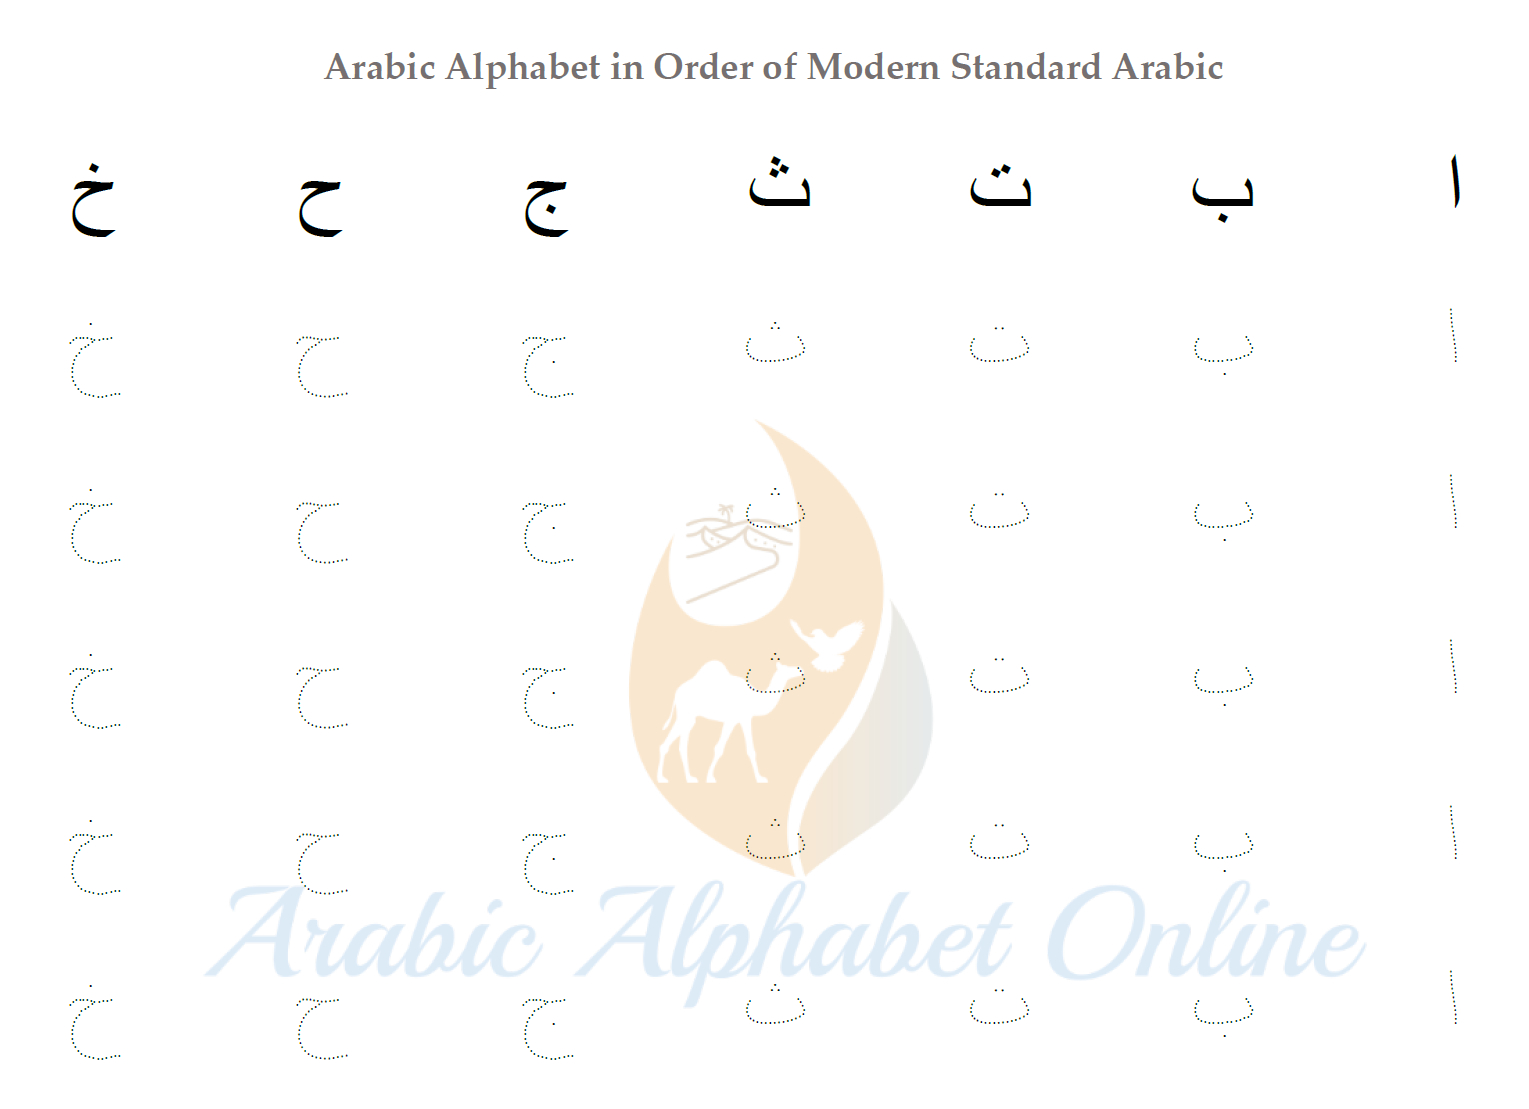 Arabic Alphabet Tracing Worksheets | Arabic Alphabet Online intended for Tracing Letters Online